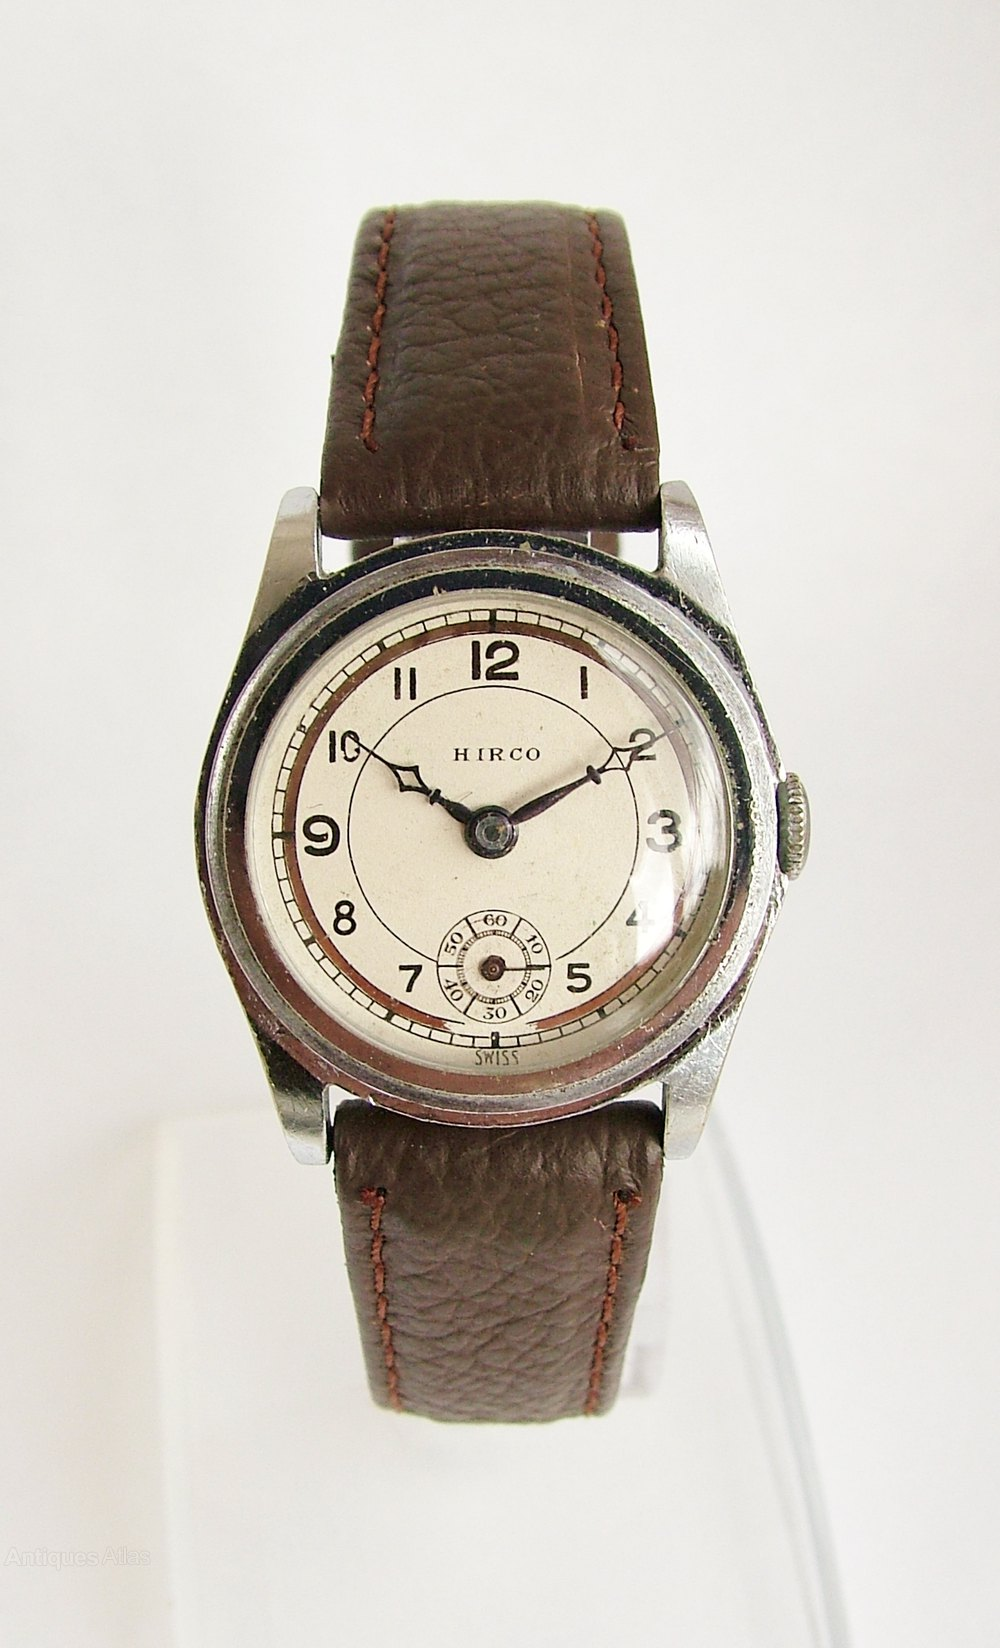 Antiques Atlas - 1940s Hirco Hand Winding Wrist Watch